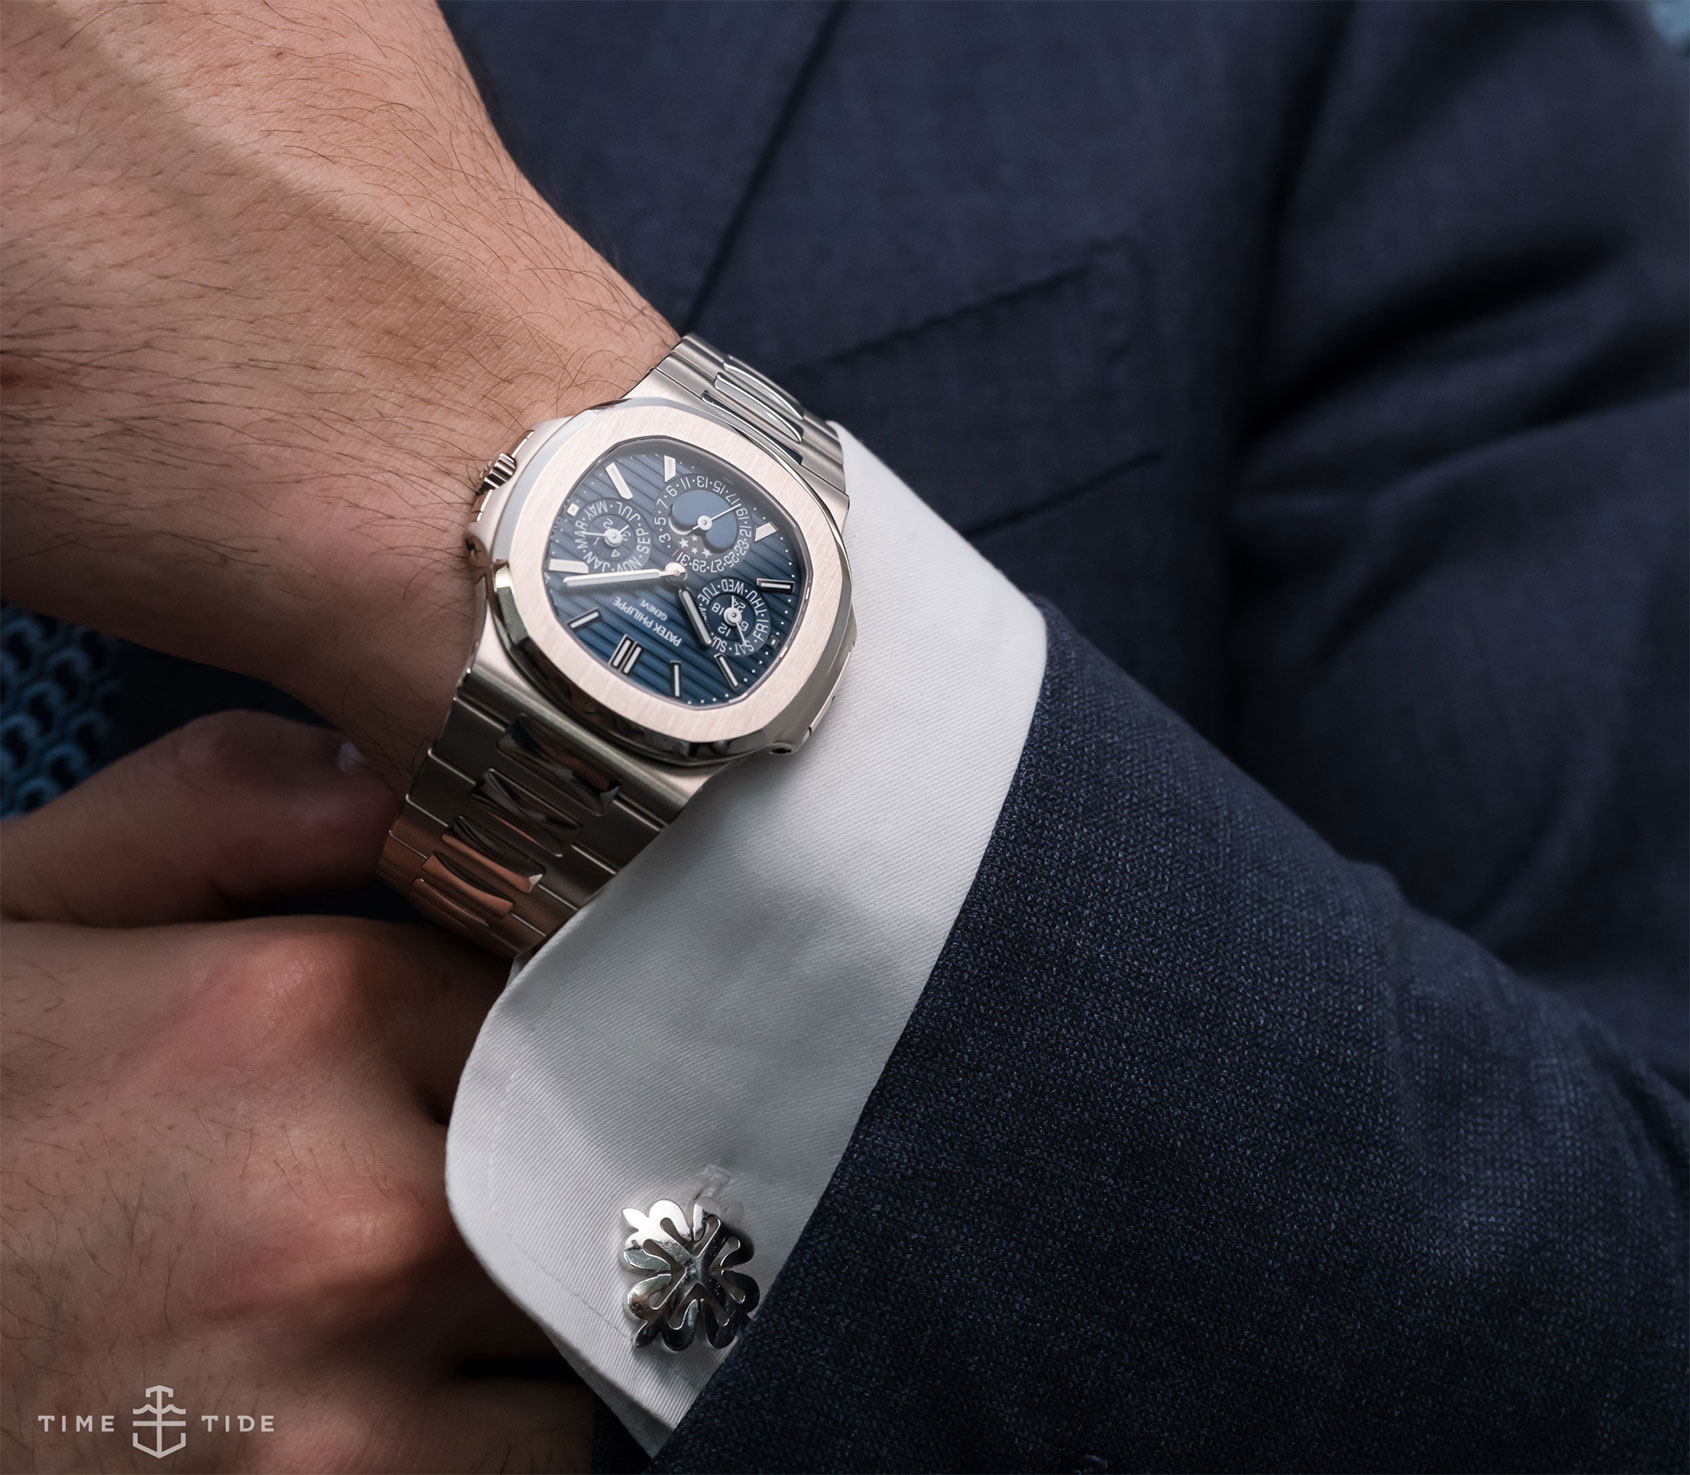 P Philippe Watch Hands On The Patek Philippe Nautilus Ref 5740 The Nautilus We